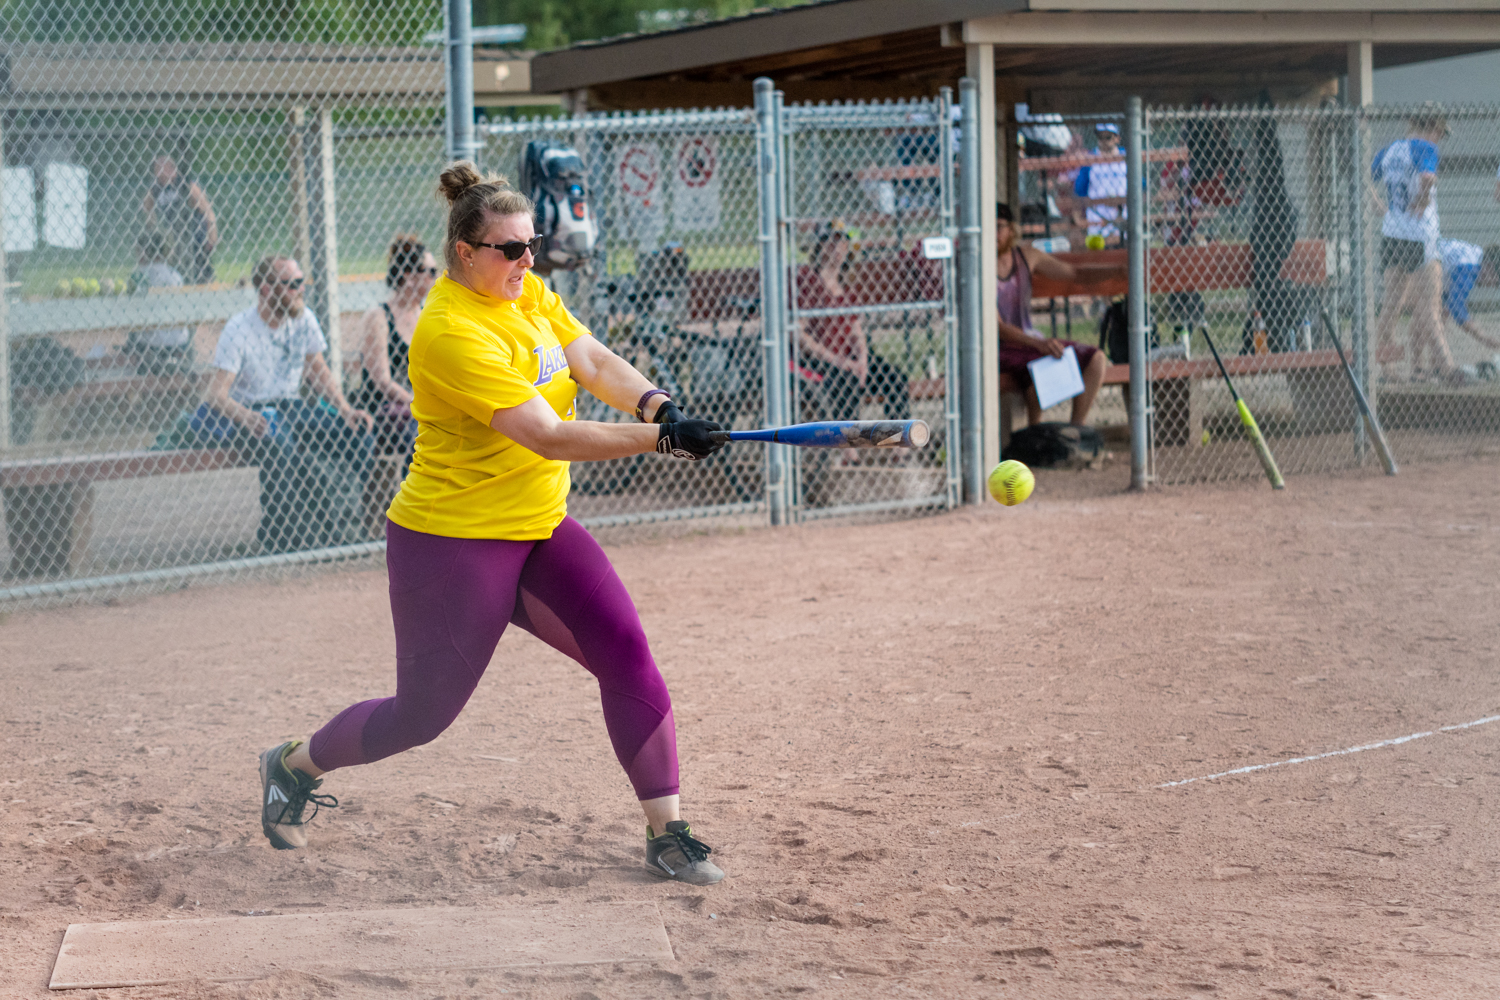 2017 08 22 Softball Playoffs 1-182.jpg